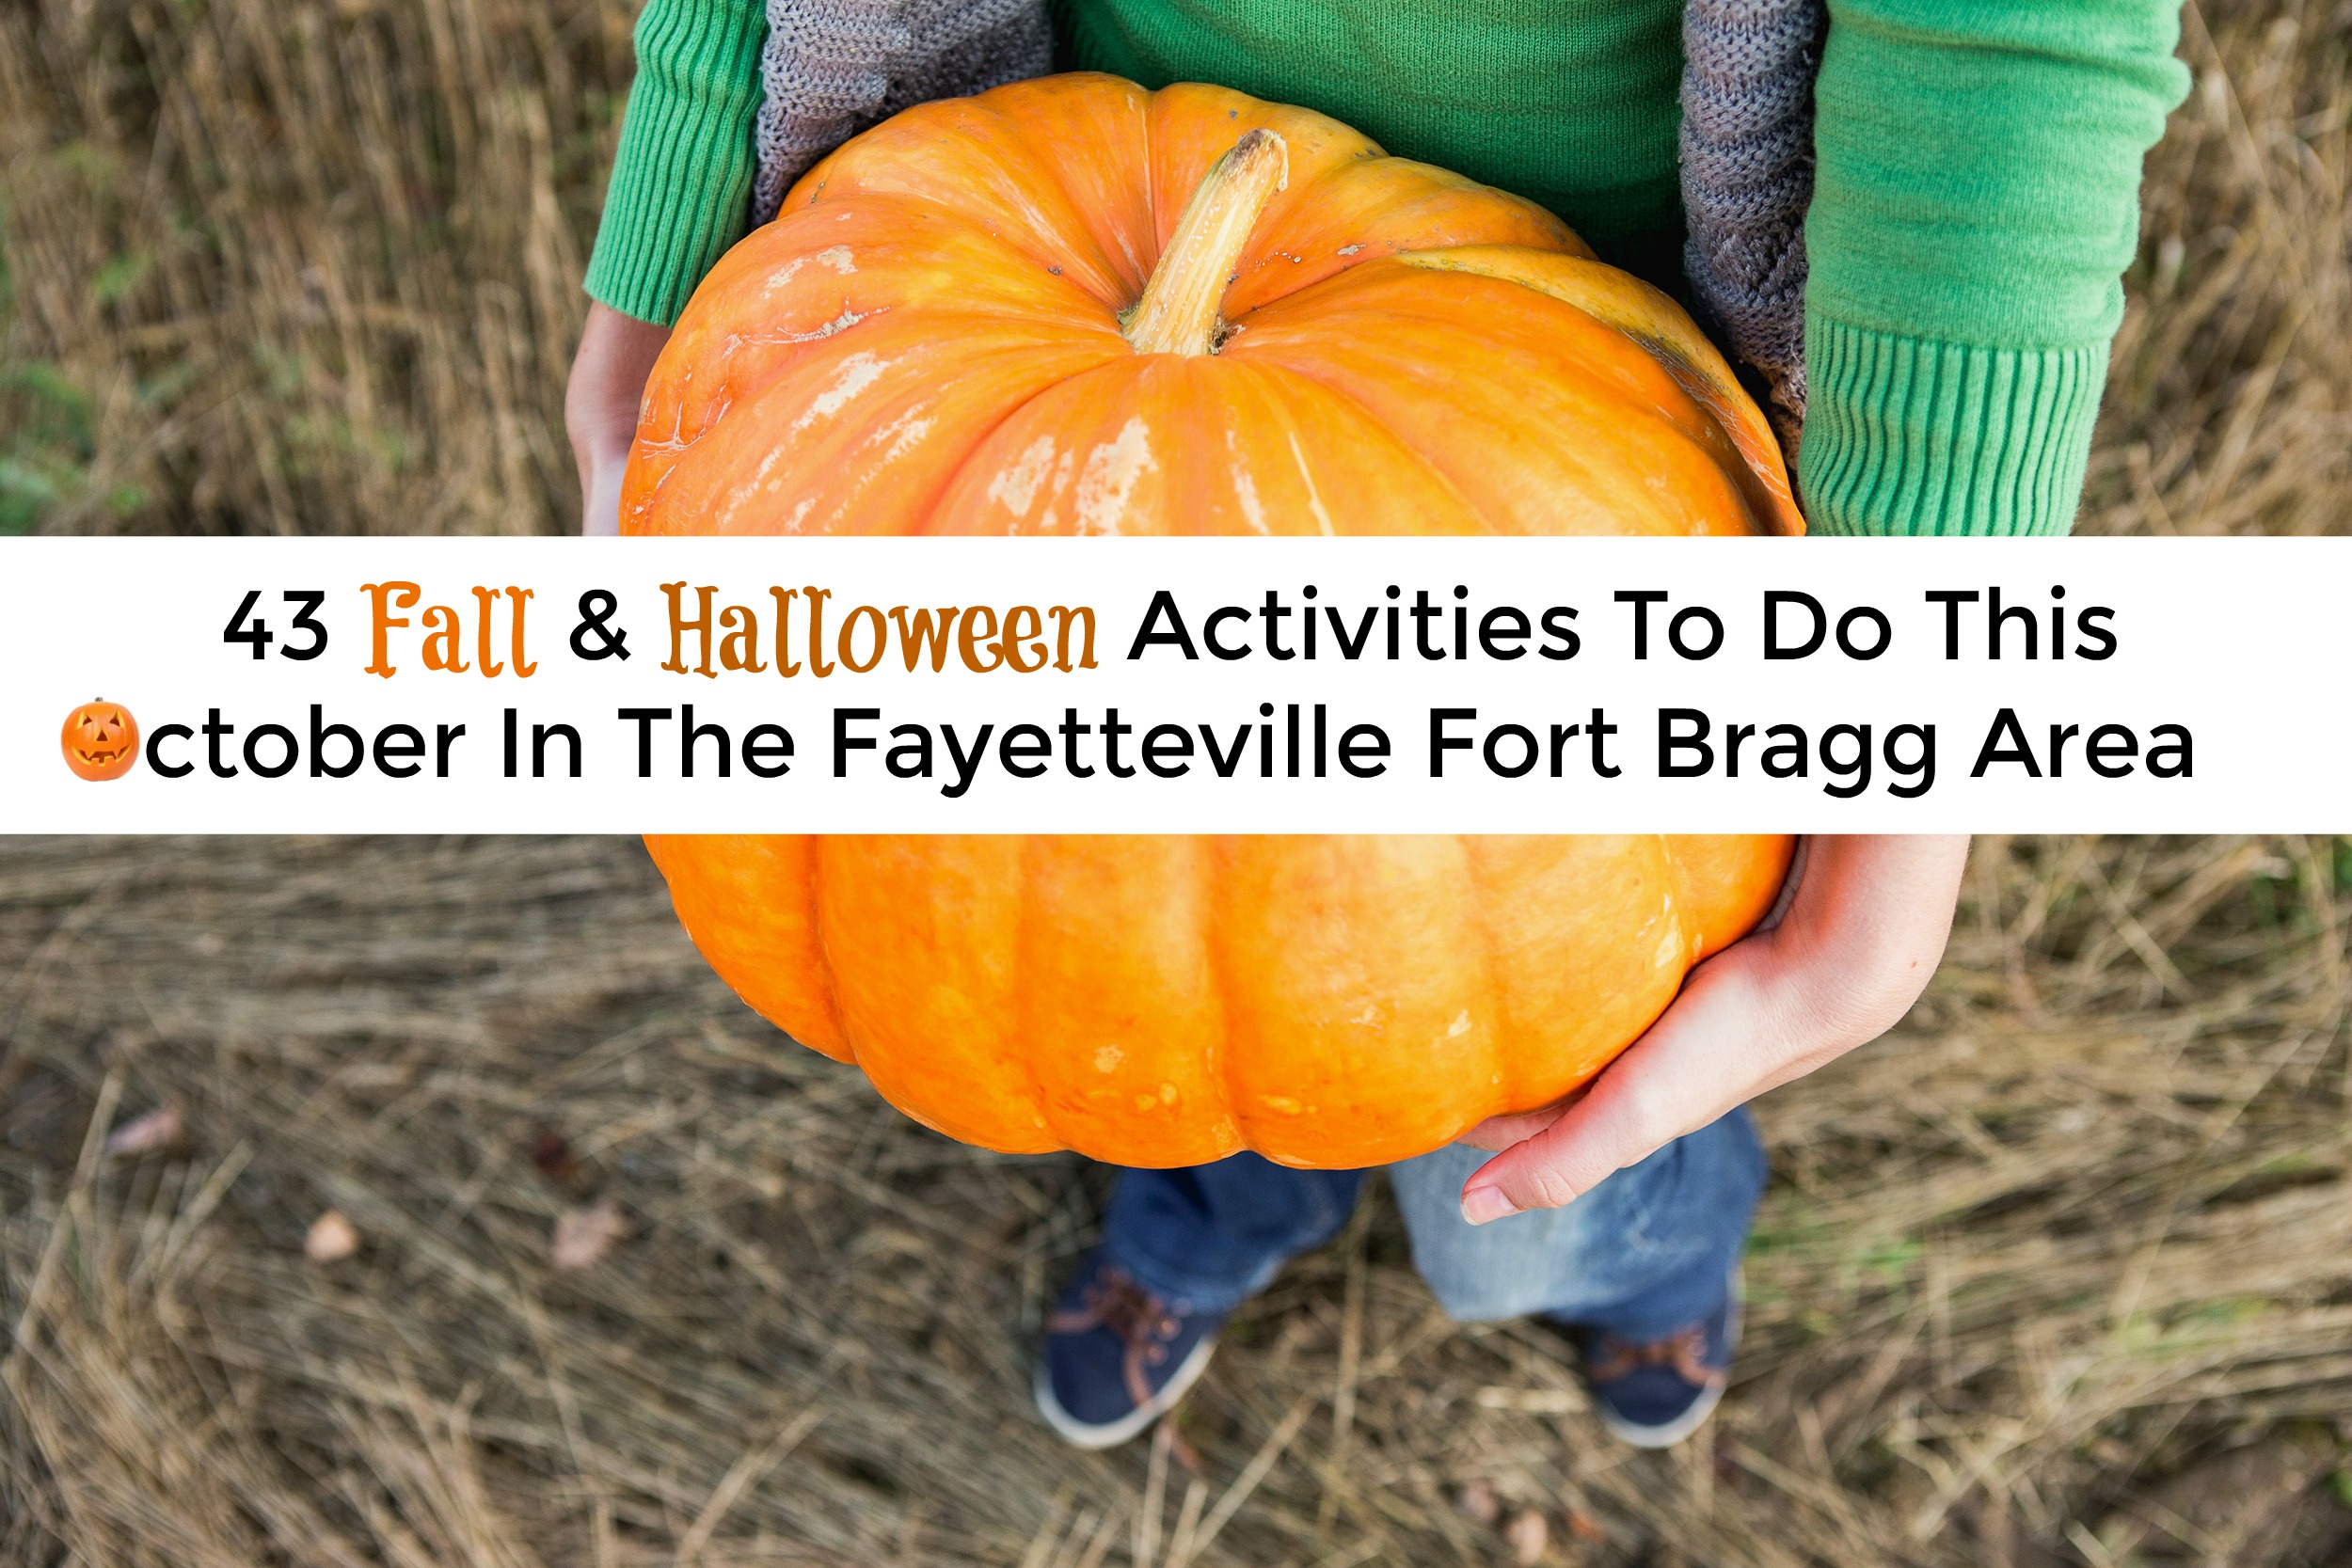 43 Fall & Halloween Activities in The Fayetteville Fort Bragg Area